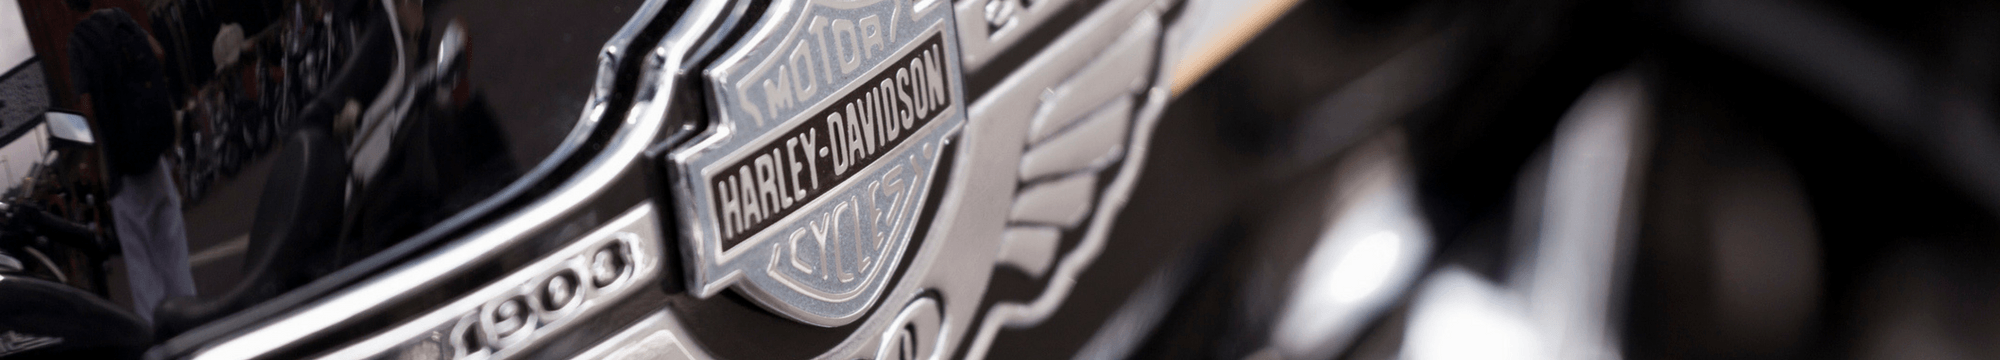 About Treasure Coast Harley-Davidson